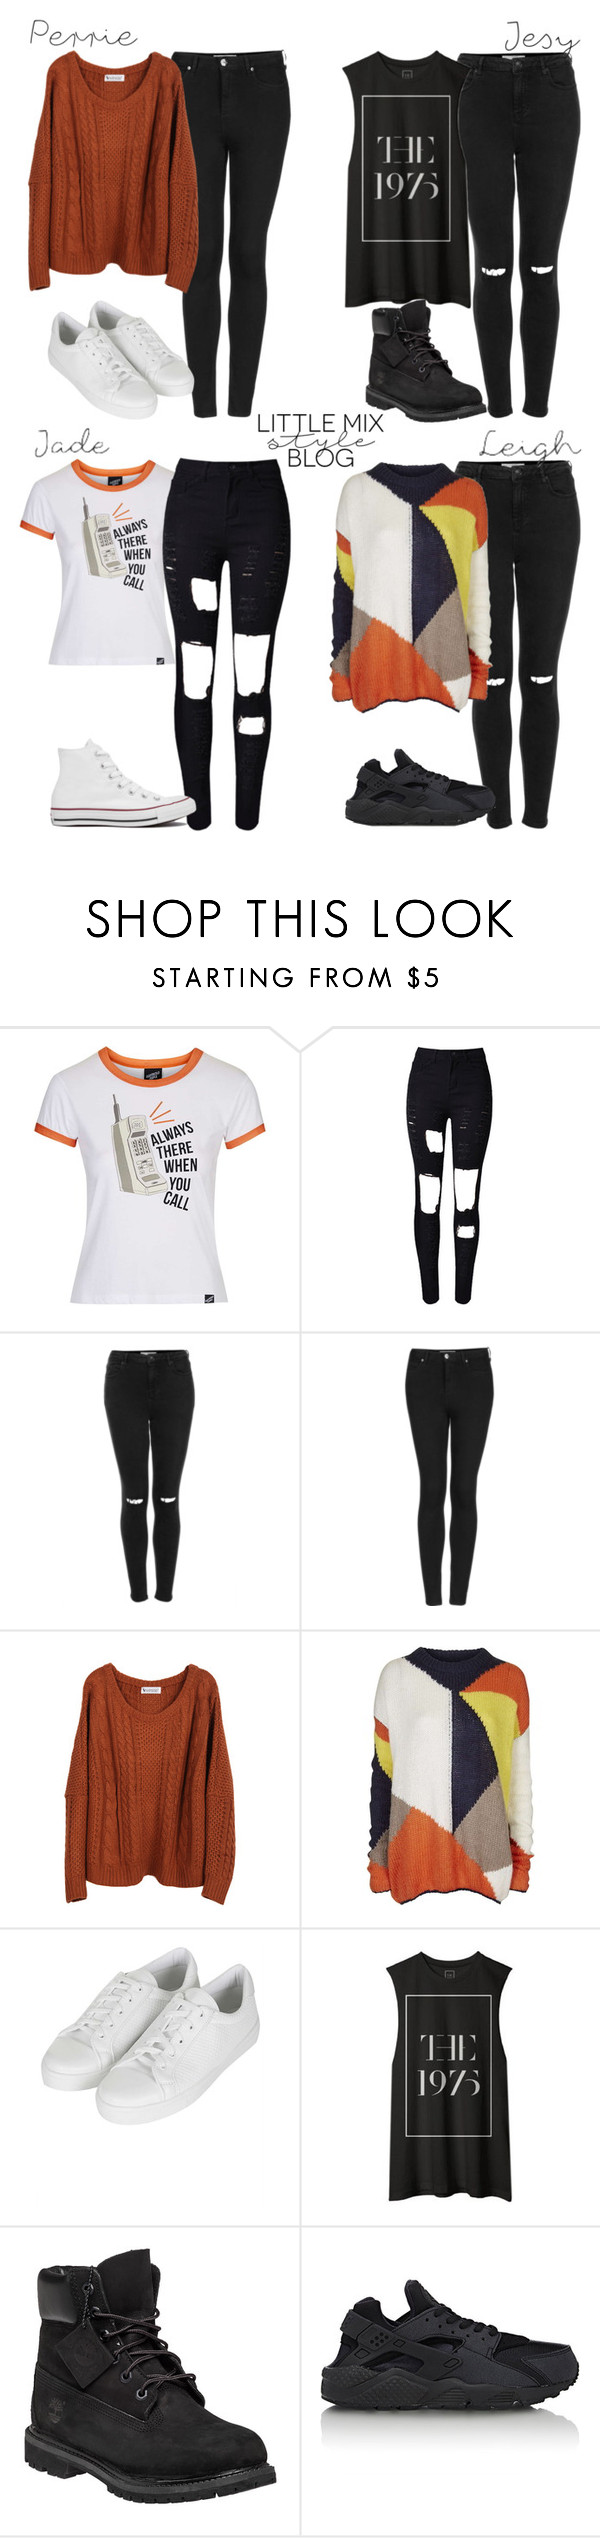 """*REQUESTED* LM Inspired Casual Outfits with Black Jeans"" by littlemix-styleblog ❤ liked on Polyvore featuring Topshop, Timberland, NIKE, Converse, women's clothing, women, female, woman, misses and juniors"